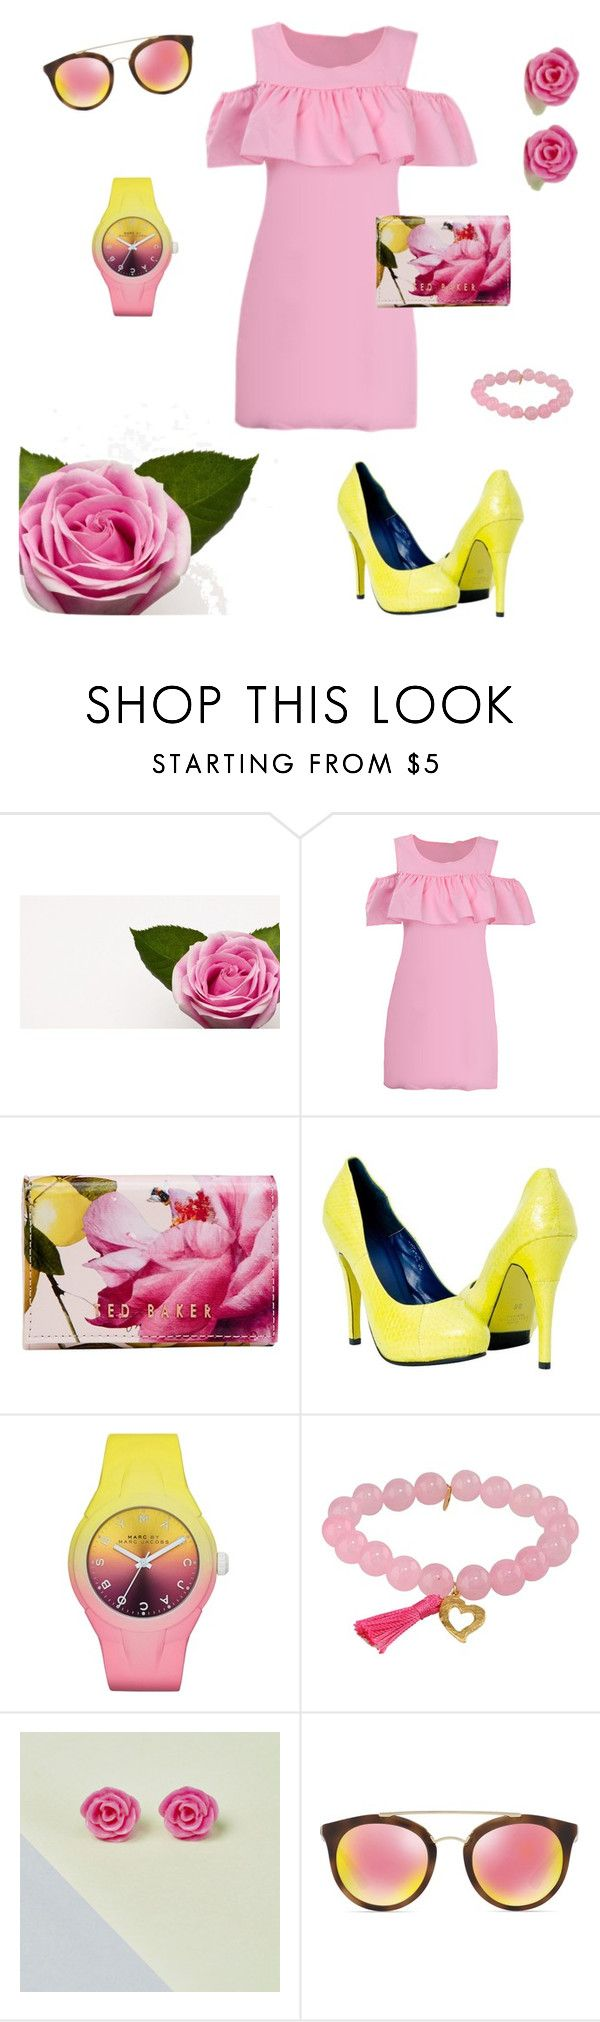 """На свидание"" by polzovatelnad on Polyvore featuring мода, Ted Baker, Marc by Marc Jacobs, Taolei и Prada"